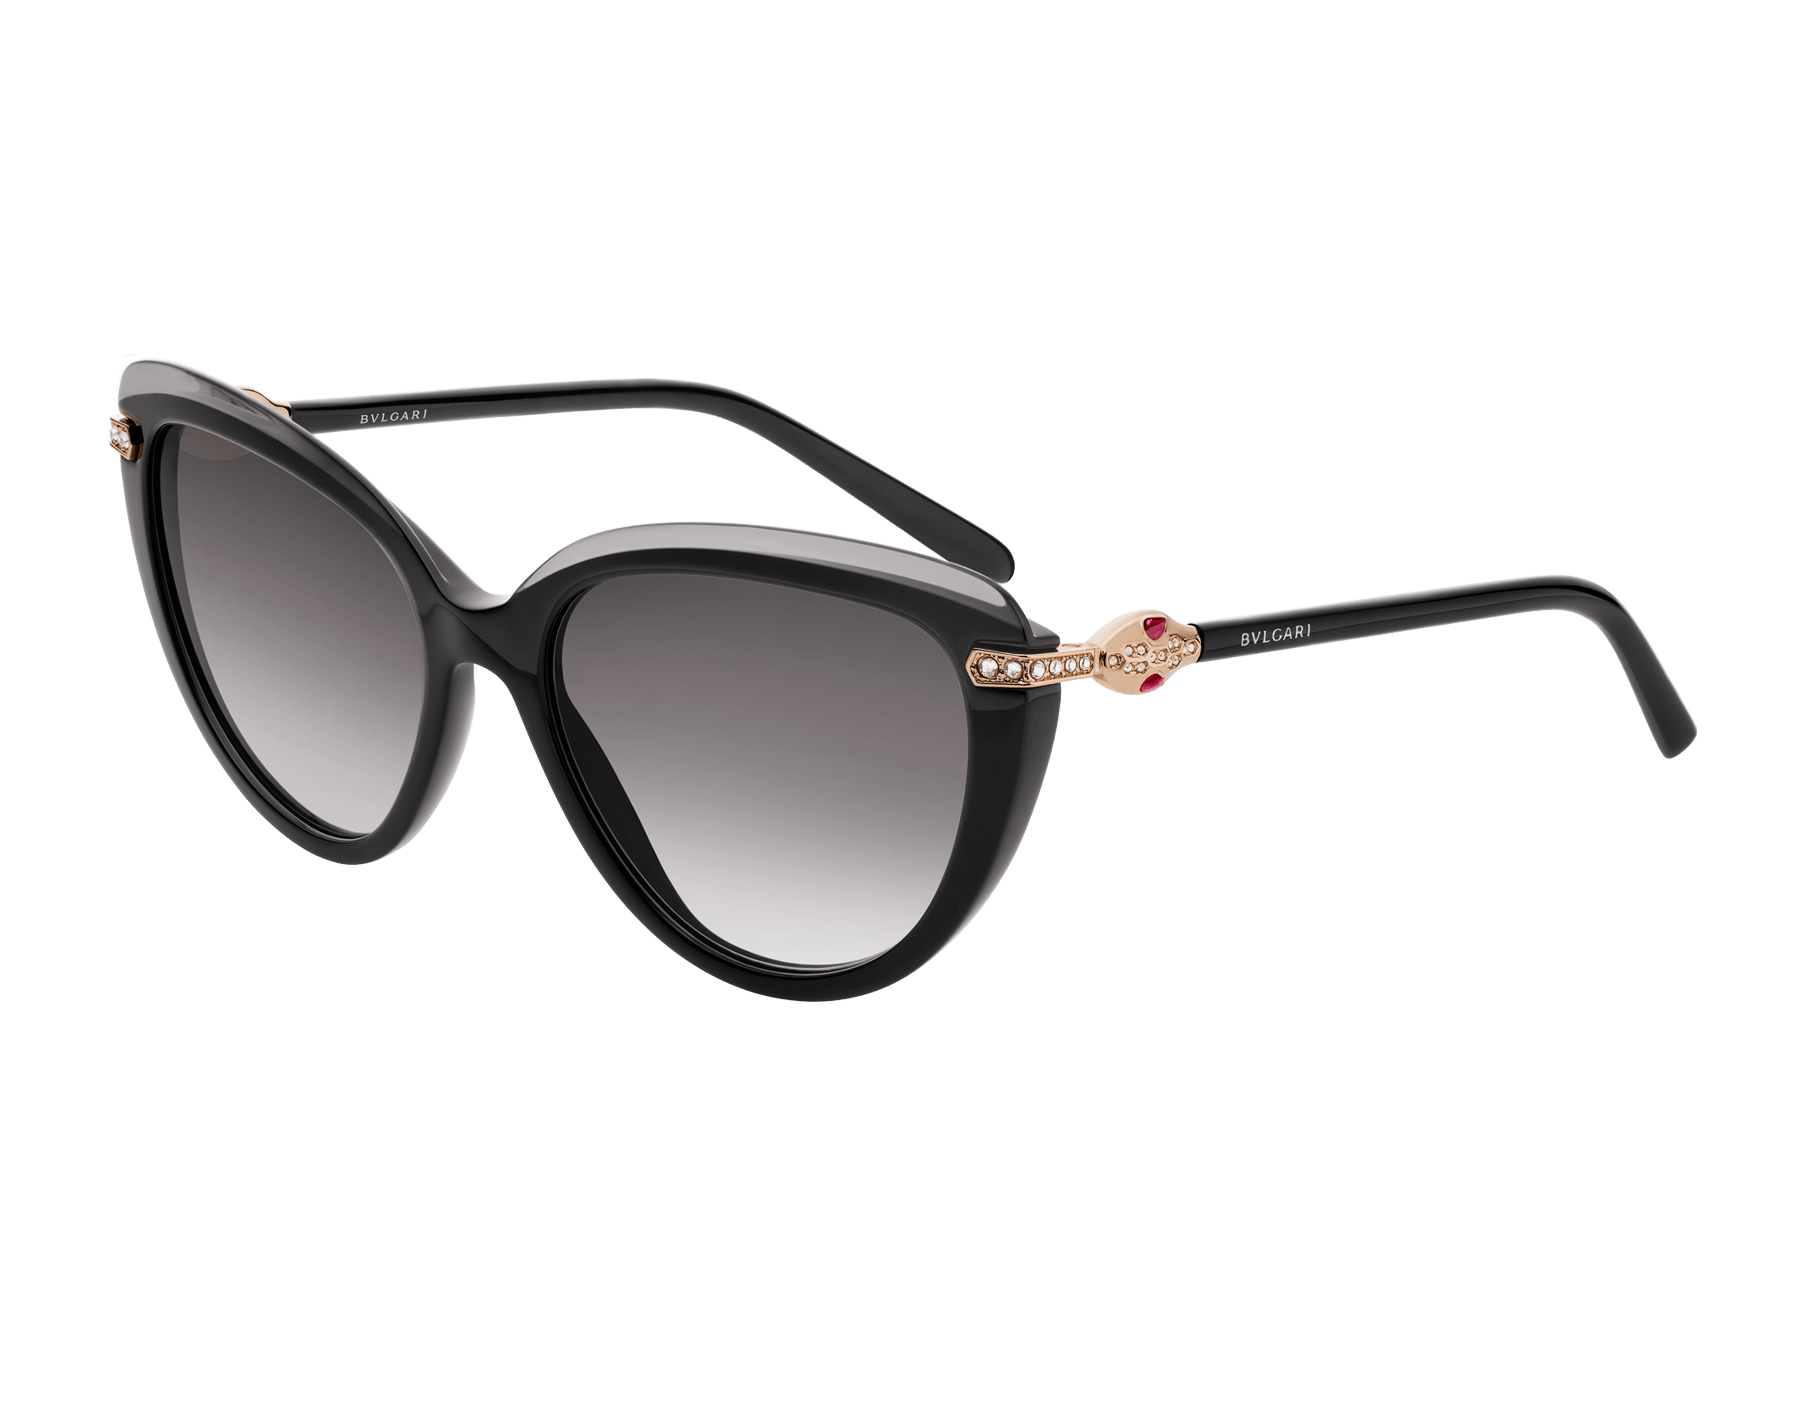 Bulgari Serpenti cat-eye acetate sunglasses. 903656 image 1